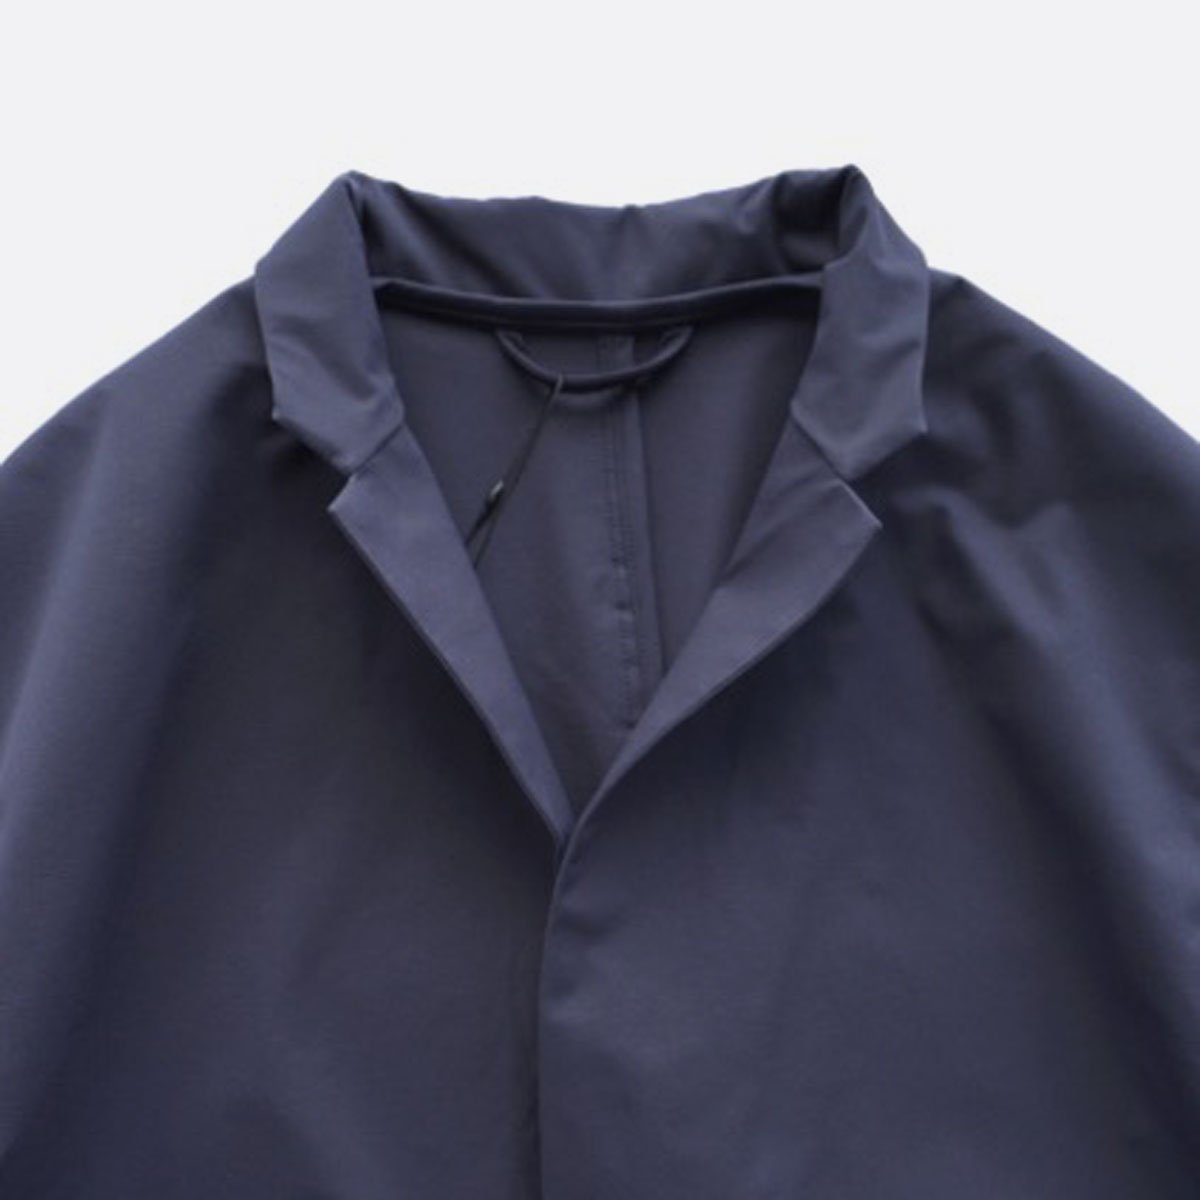 DESCENTE PAUSE PACKBLE JACKET (NAVY)4